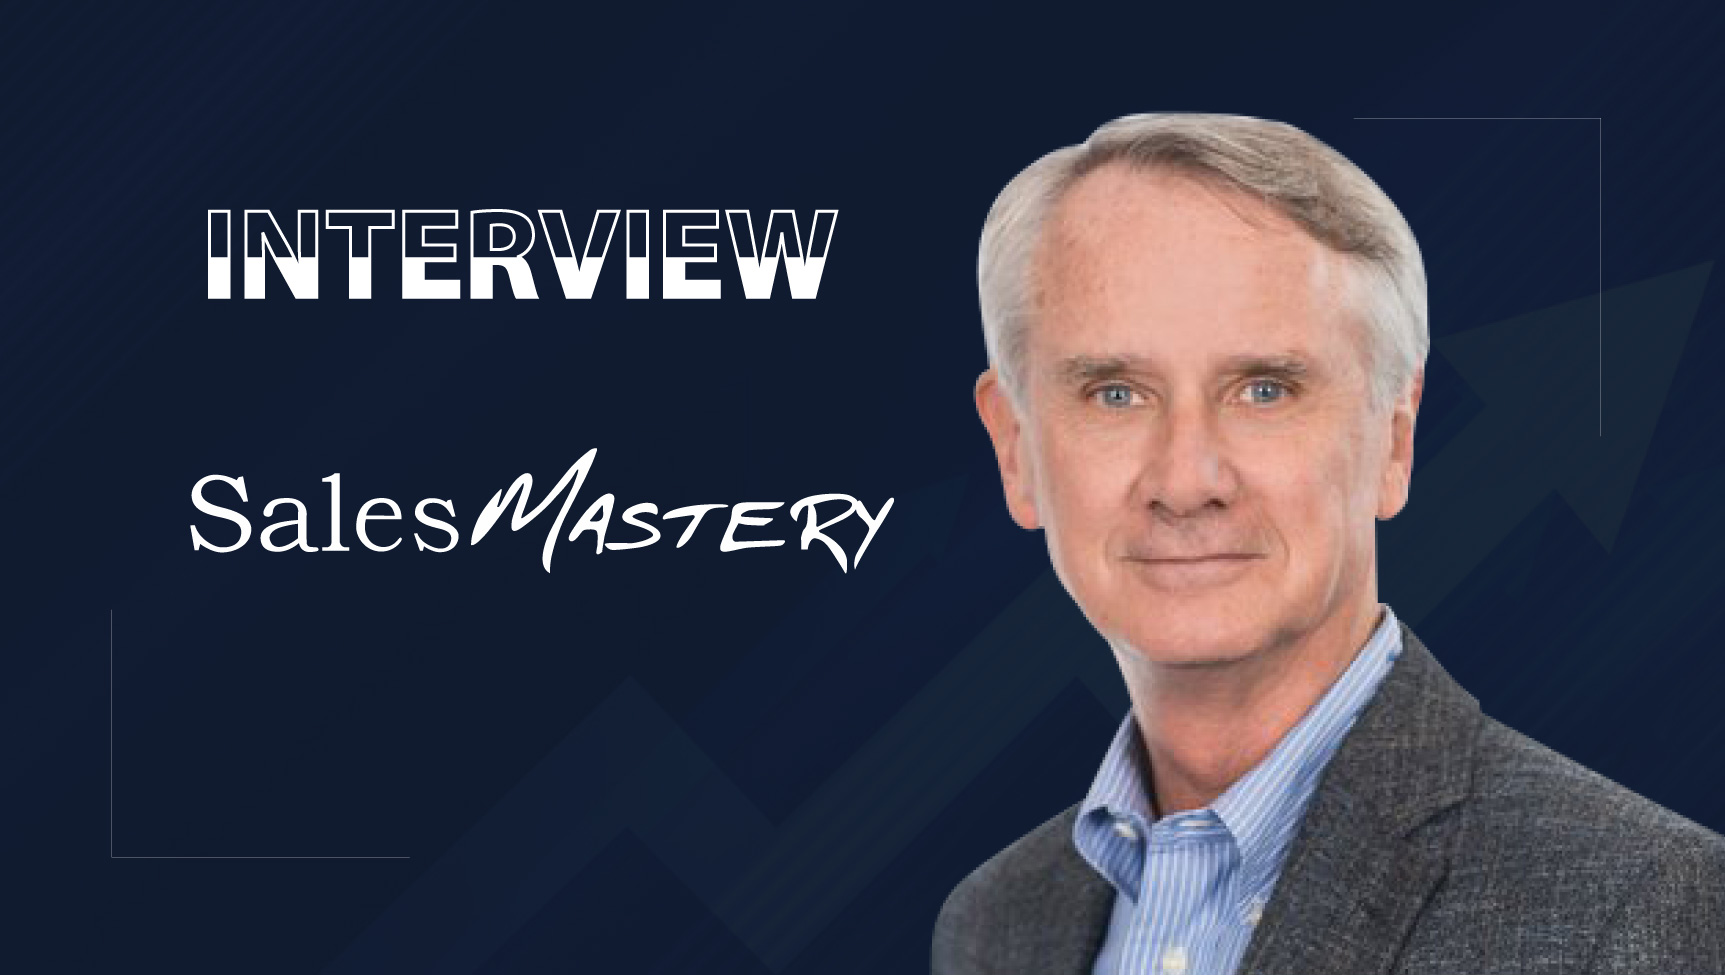 SalesTech Star Interview With Jim Dickie, Research Fellow At Sales Mastery